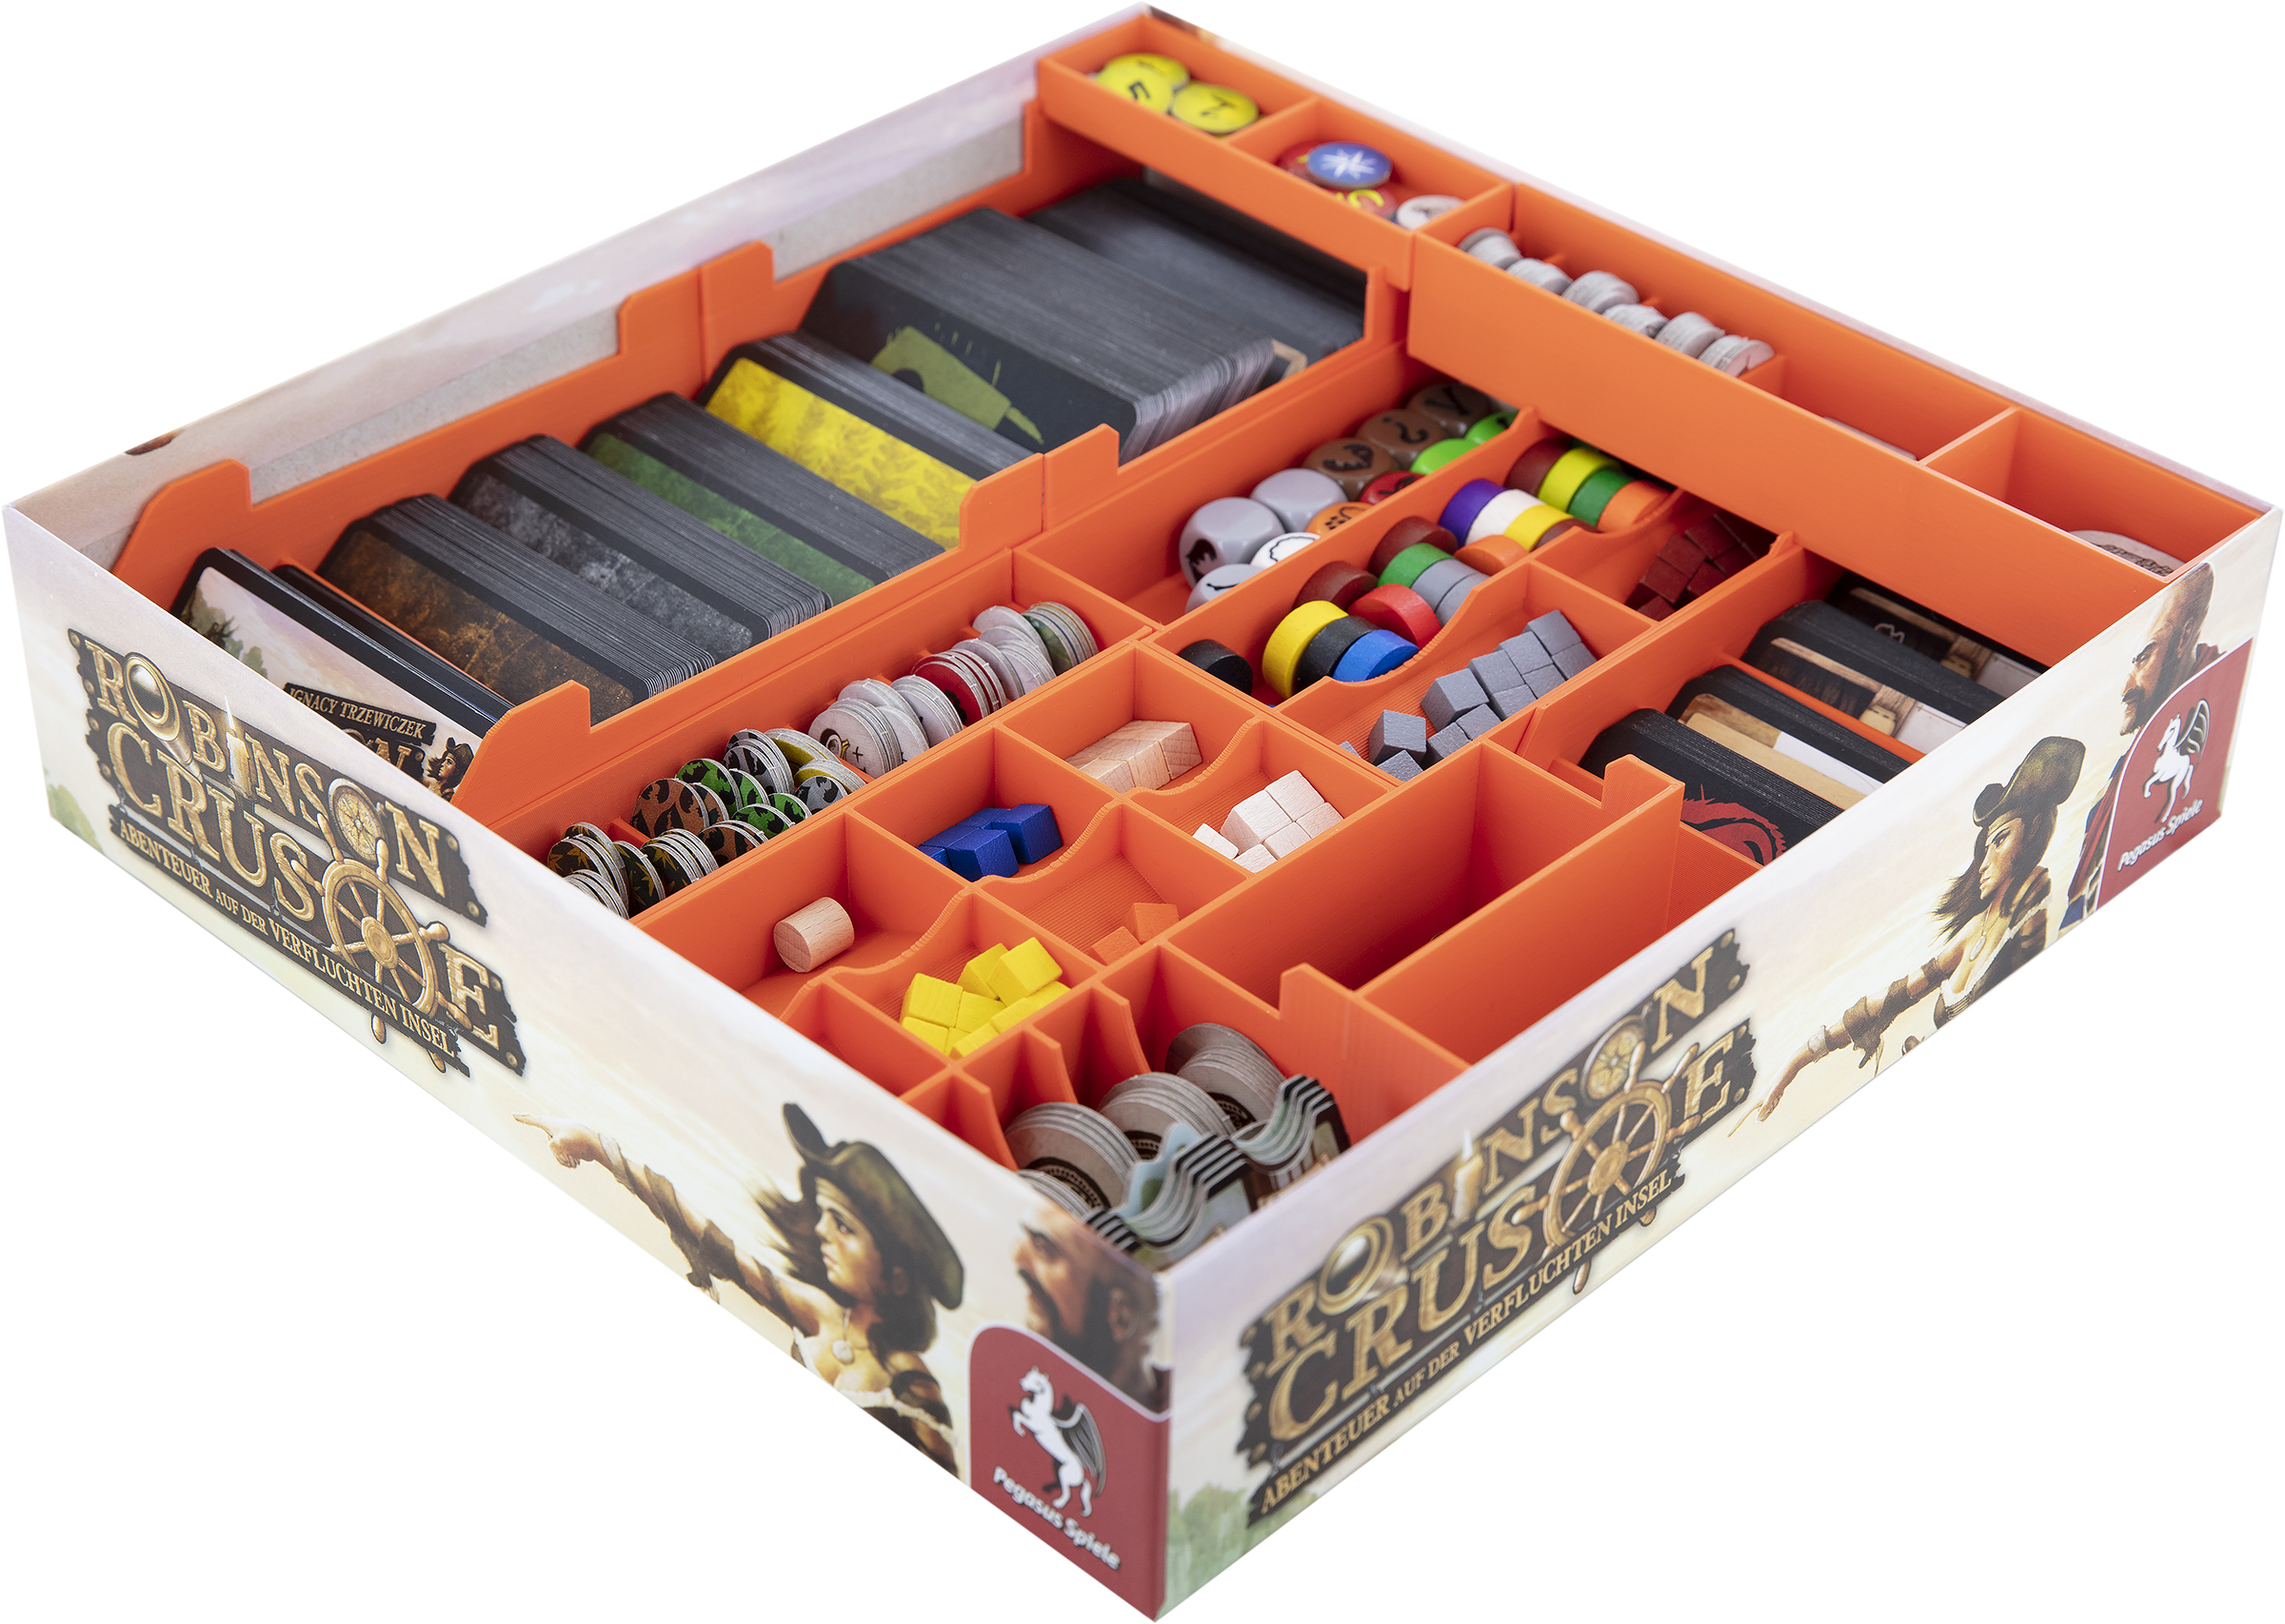 Feldherr Organizer for Robinson Crusoe and expansion Voyage of the Beagle